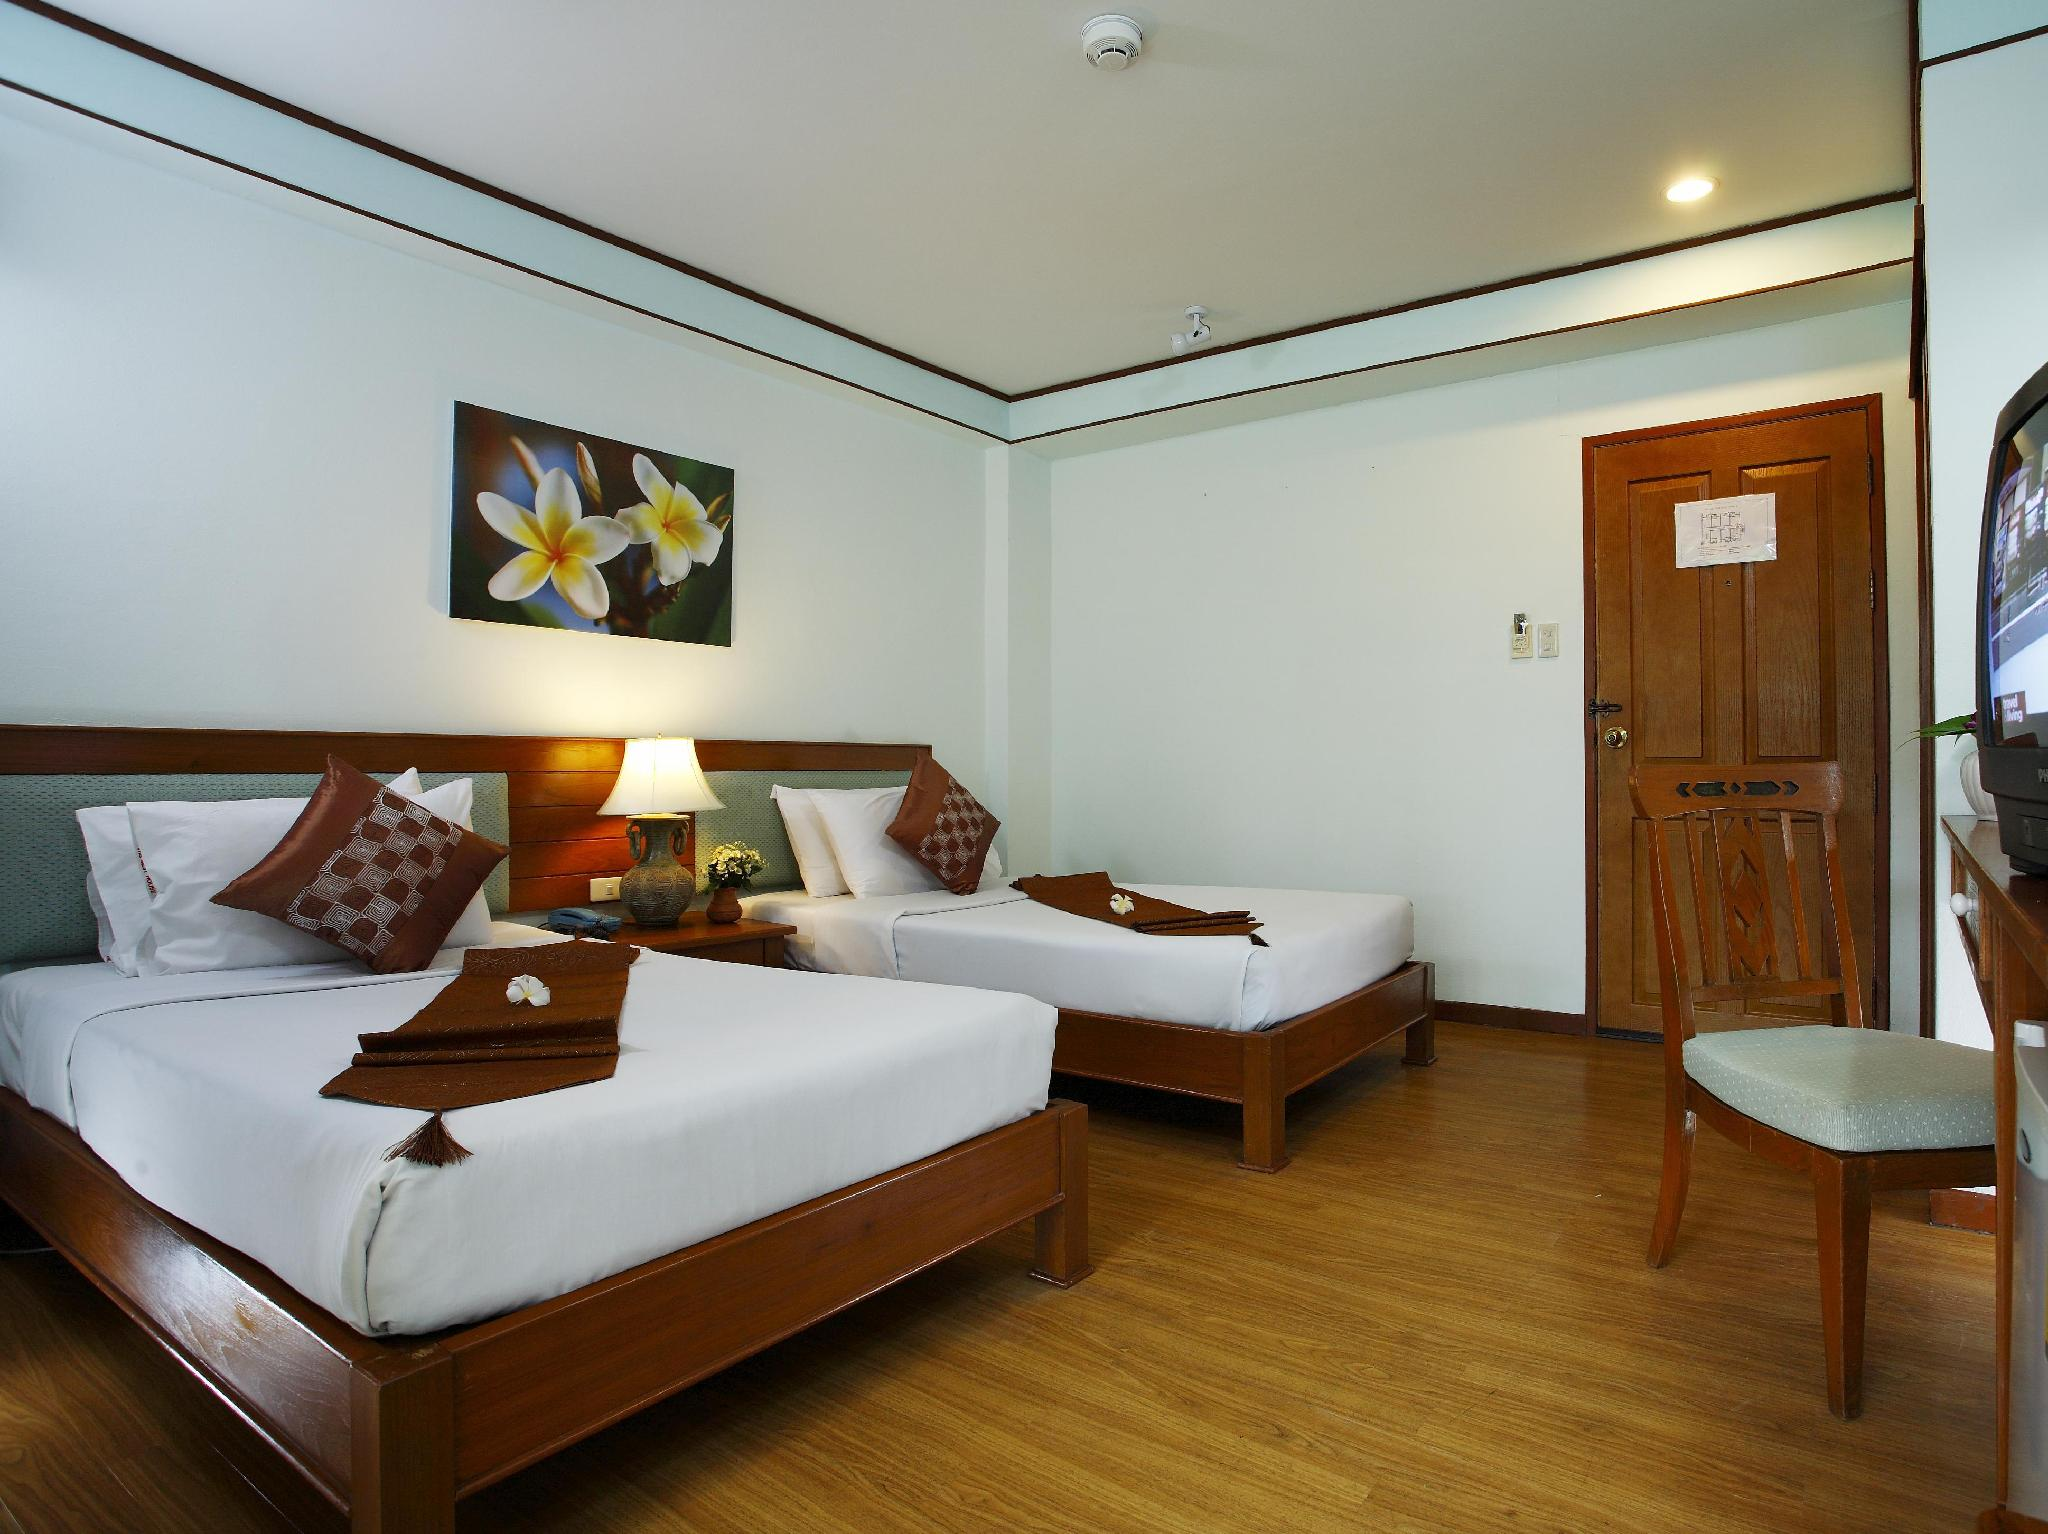 The Best House Hotel ภูเก็ต